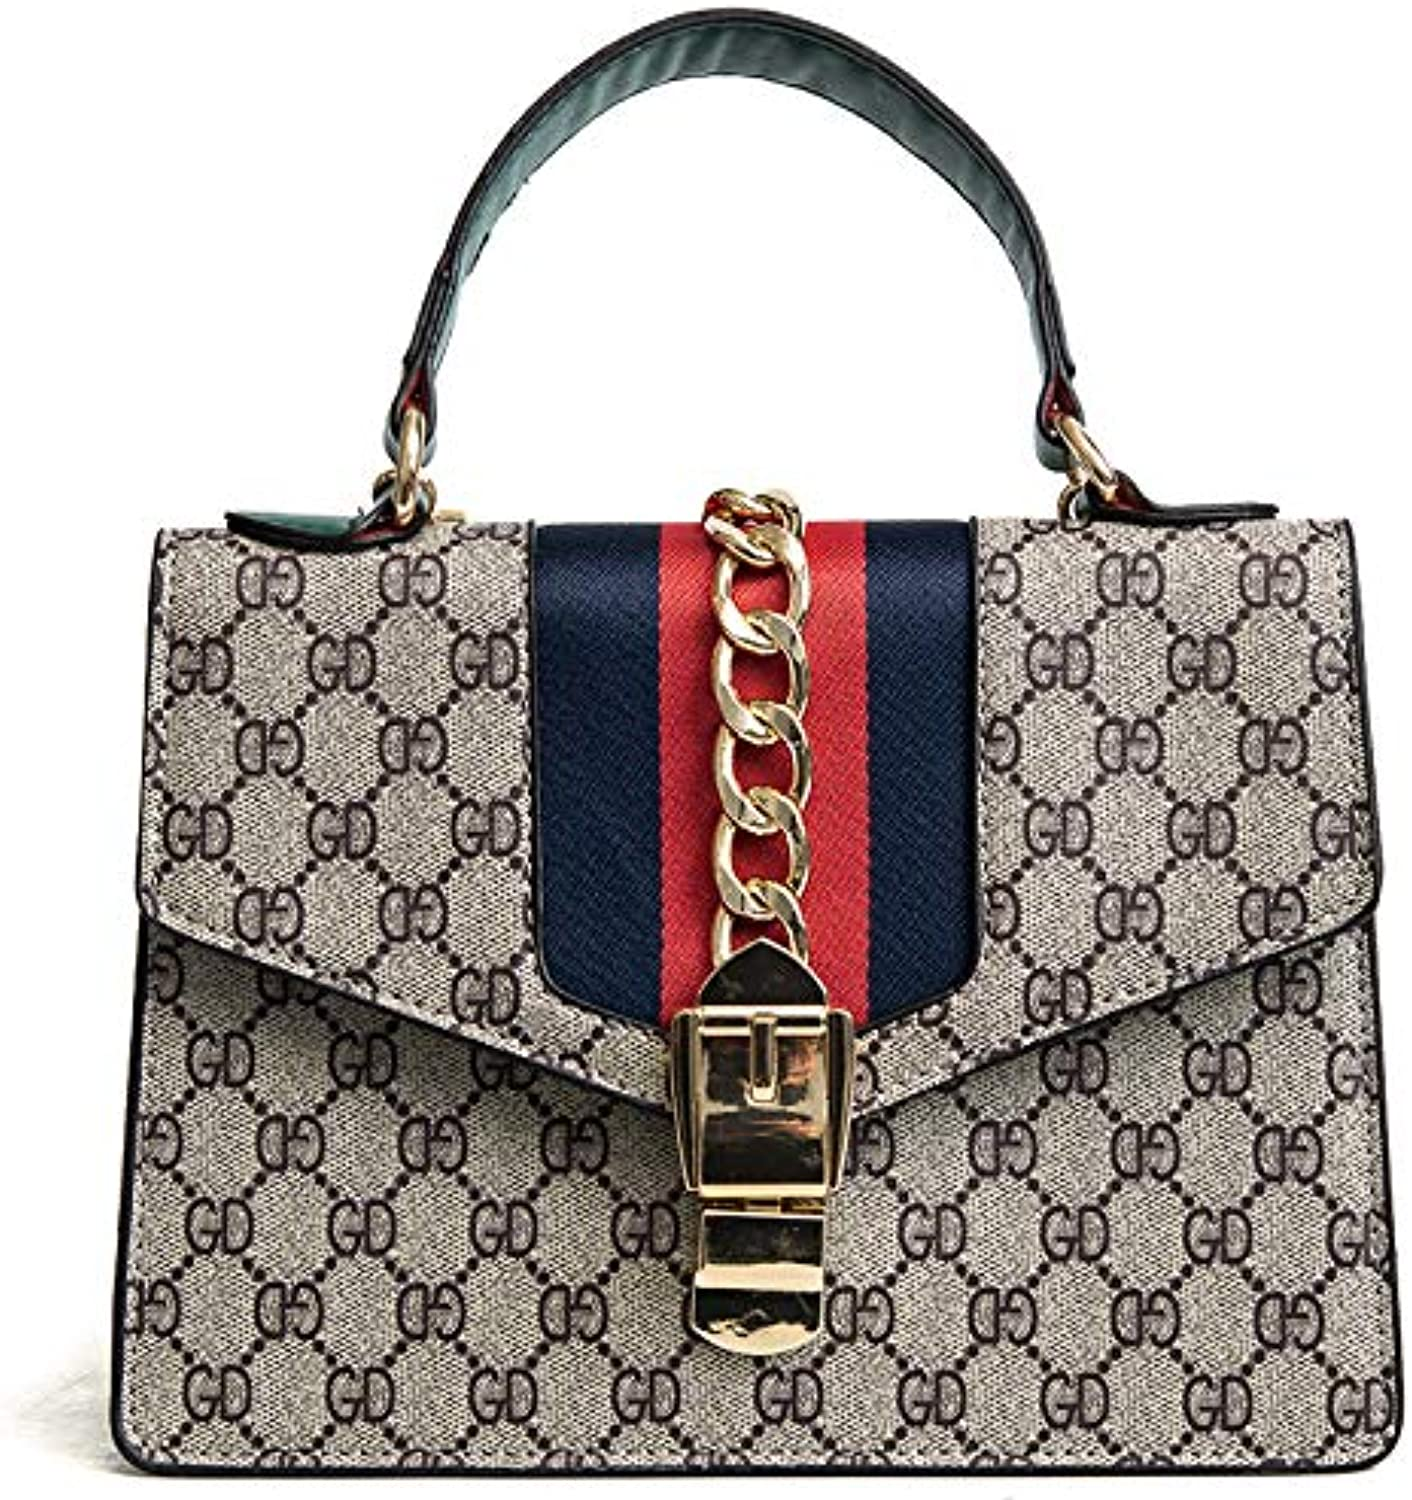 AI BAO Women's Fashion Lock Print Small Party Bag Handbag Chain Messenger Shoulder Bag